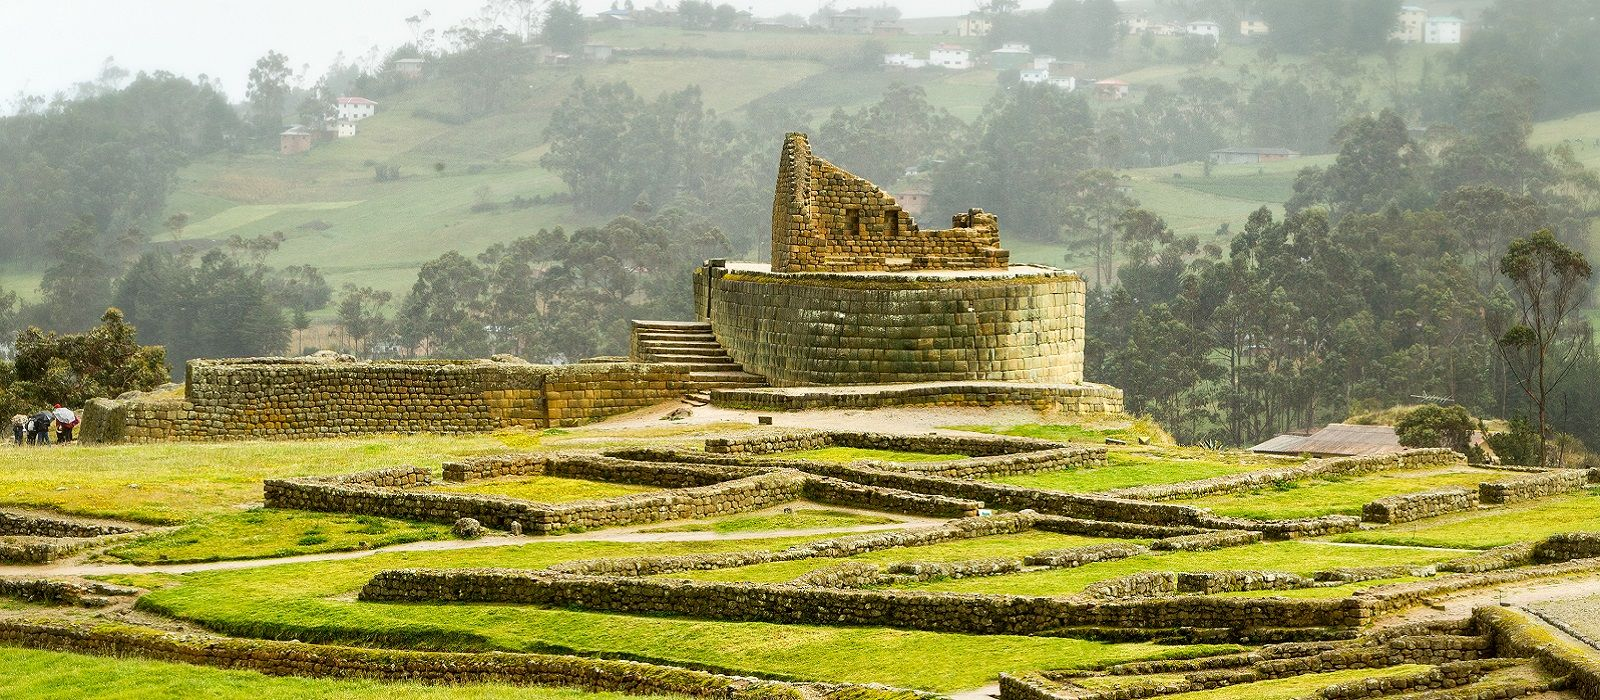 history of Ecuador - Enchanting Travels Ecuador Tours INGAPIRCA RUINS, THE MOST IMPORTANT INCA CIVILIZATION CONSTRUCTIONS IN MODERN ECUADOR South America